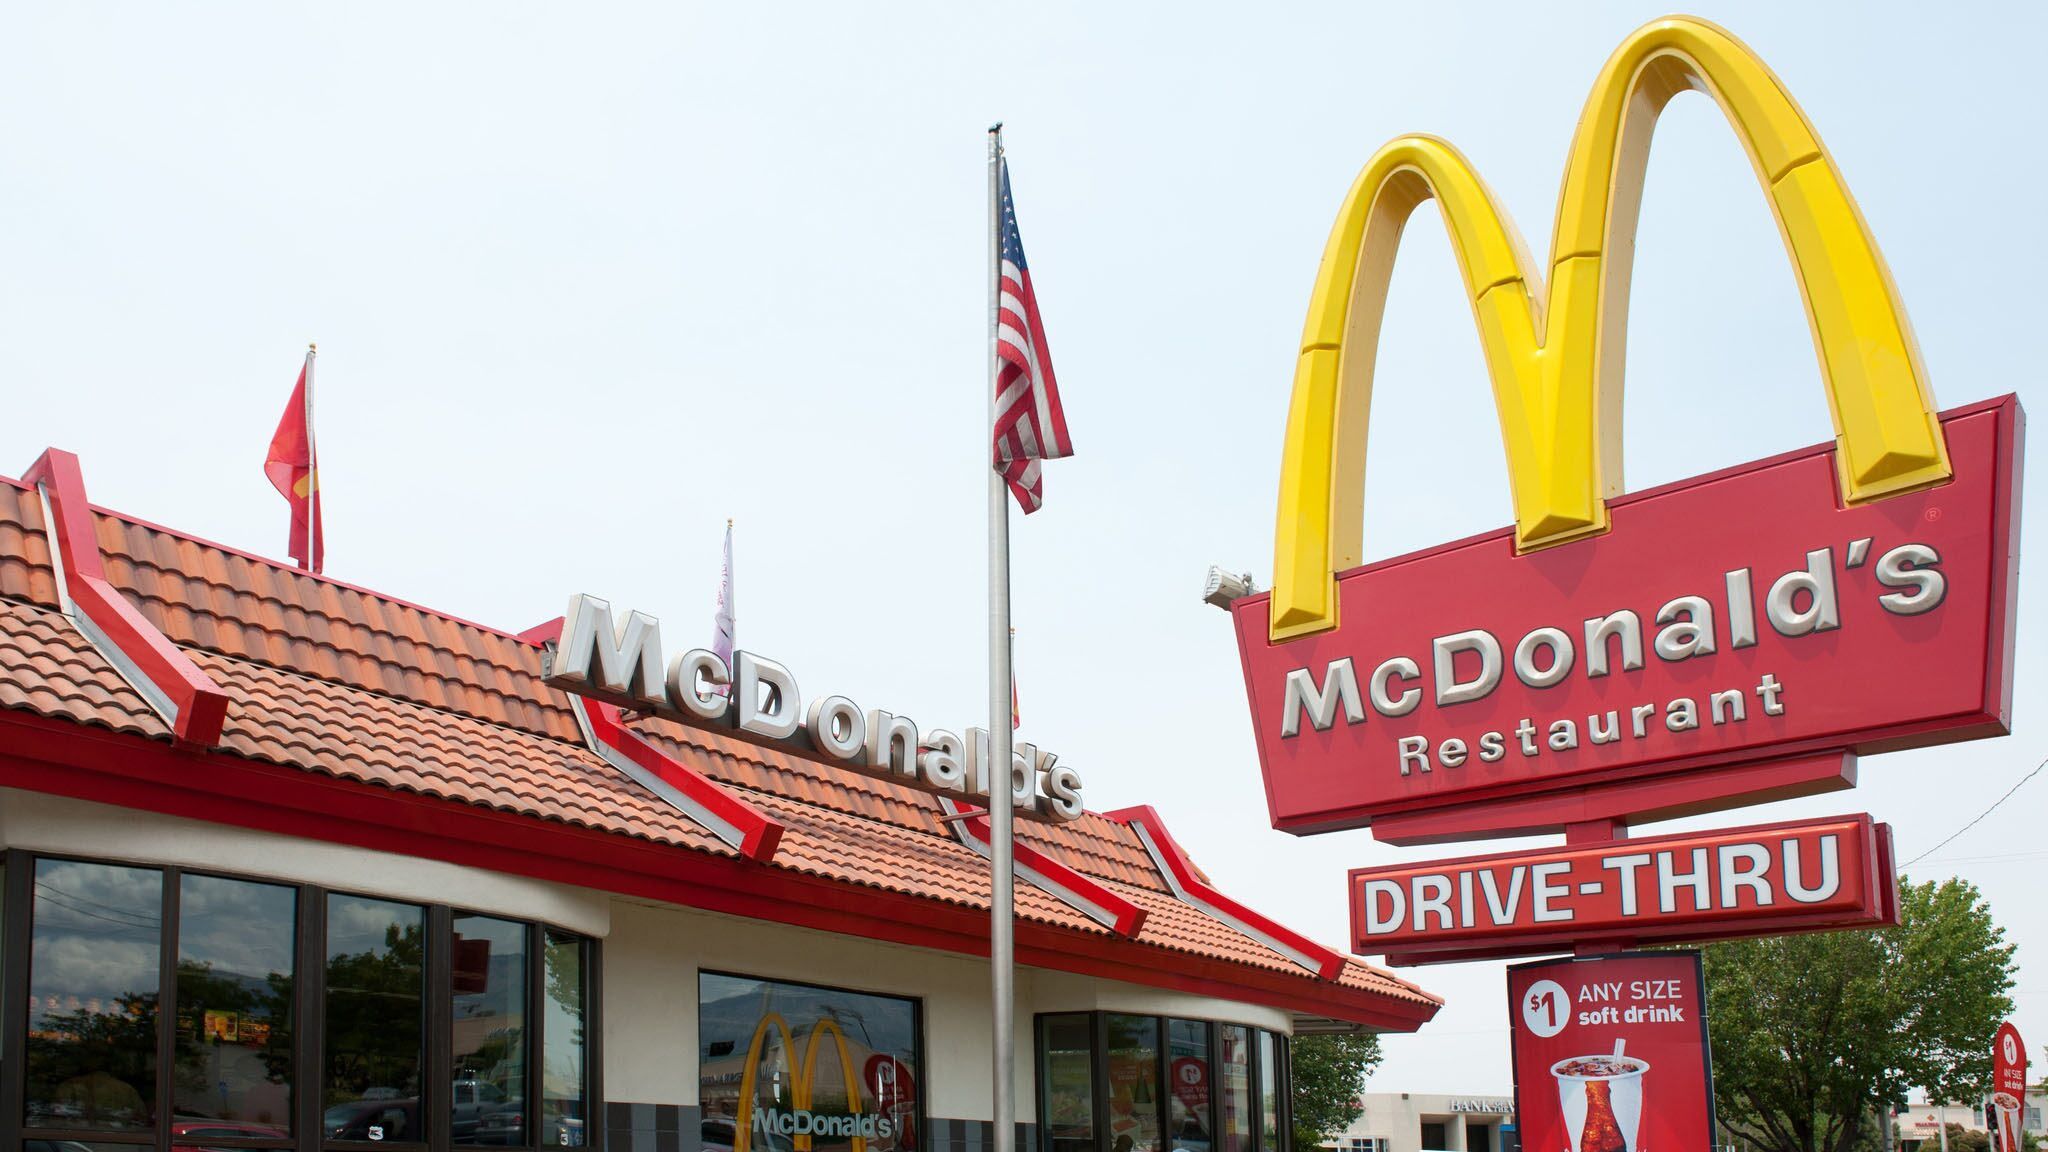 Moment of true love caught at McDonald's, inspires others